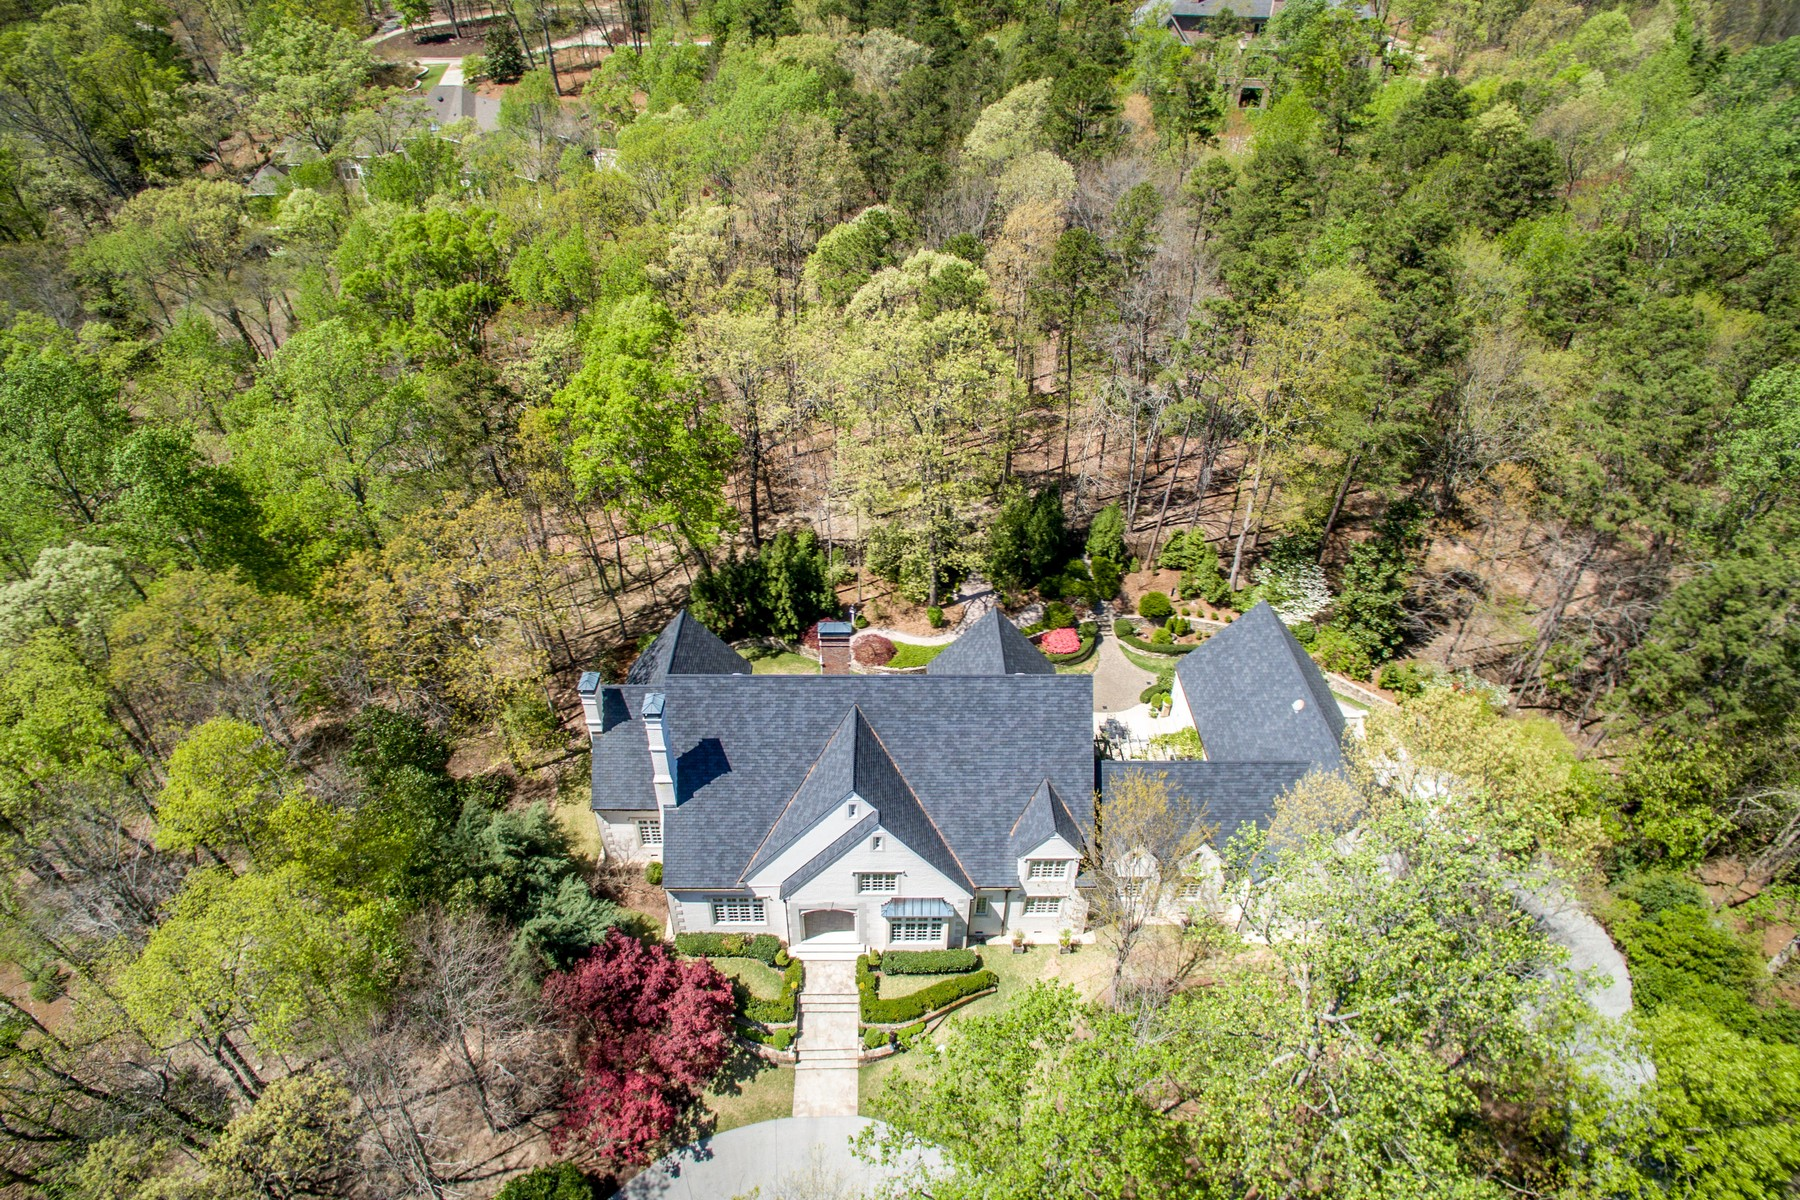 Single Family Home for Sale at Governor's Club Manor 11124 Governors Drive Chapel Hill, North Carolina, 27517 United StatesIn/Around: Chapel Hill, Durham, Raleigh, Cary